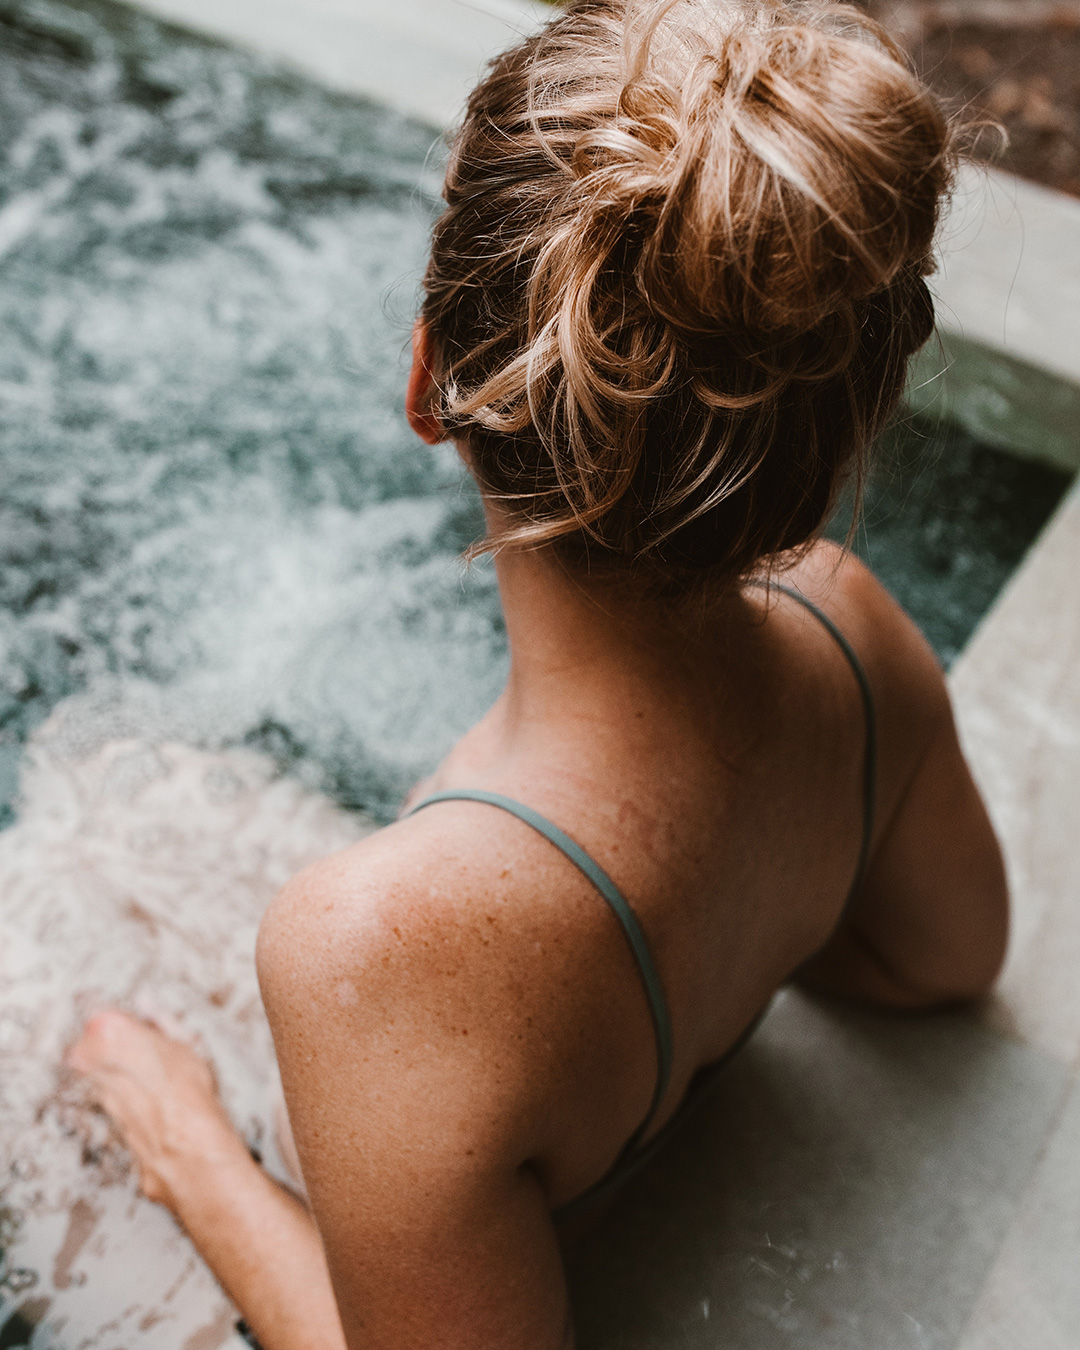 Over the shoulder shot of woman in hot tub